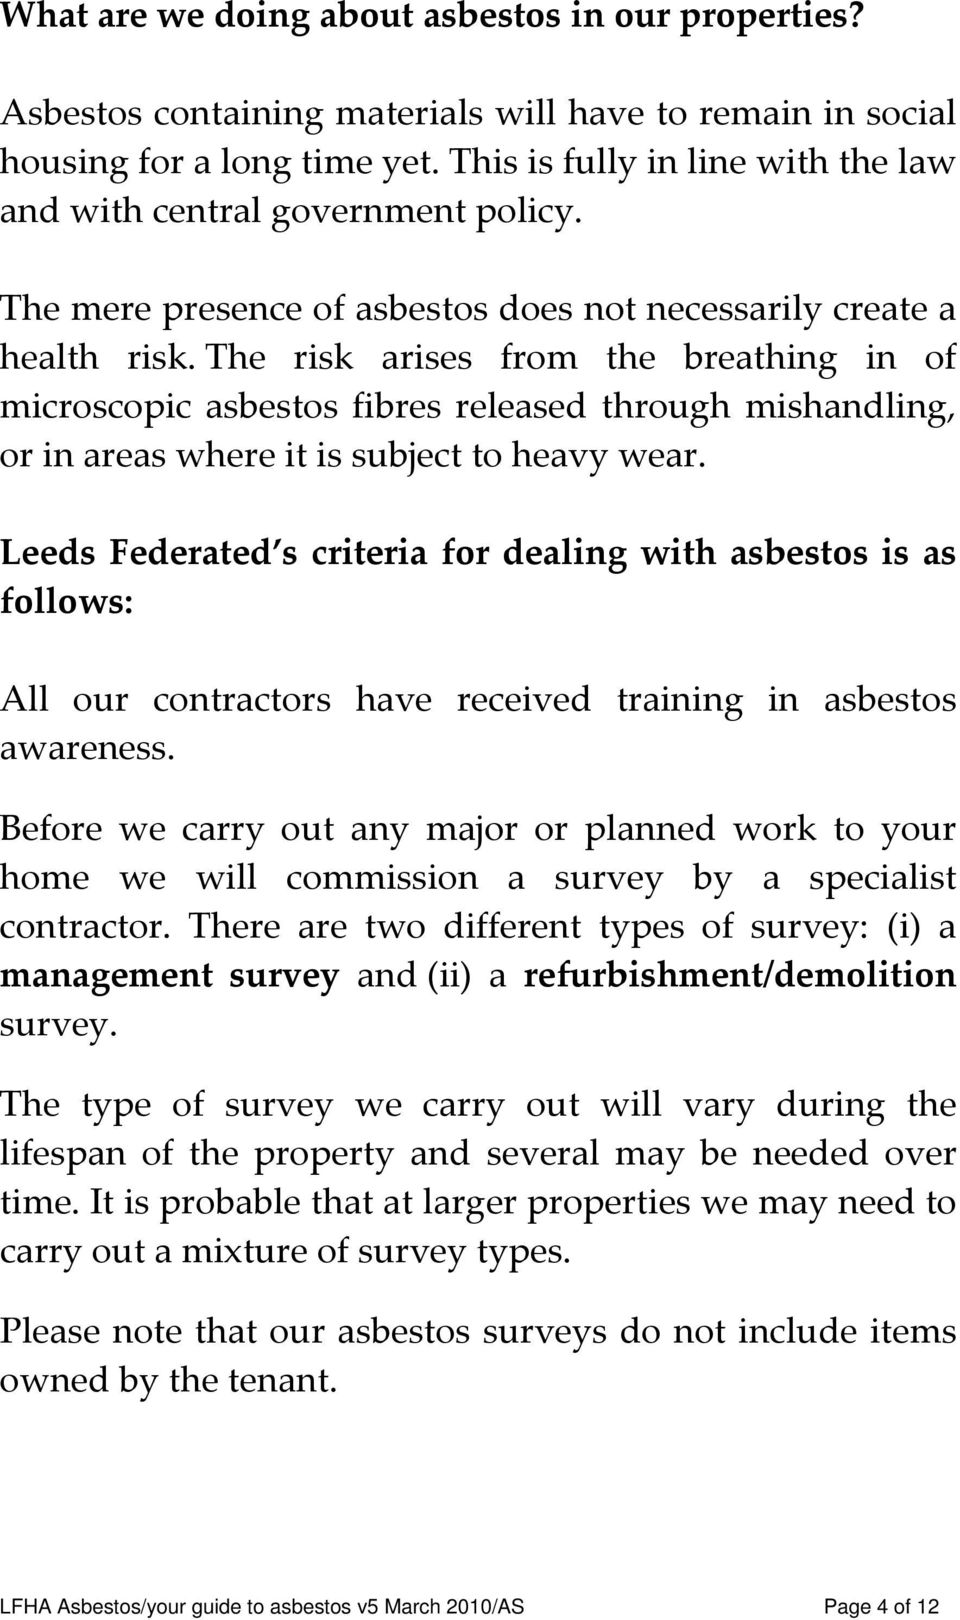 The risk arises from the breathing in of microscopic asbestos fibres released through mishandling, or in areas where it is subject to heavy wear.